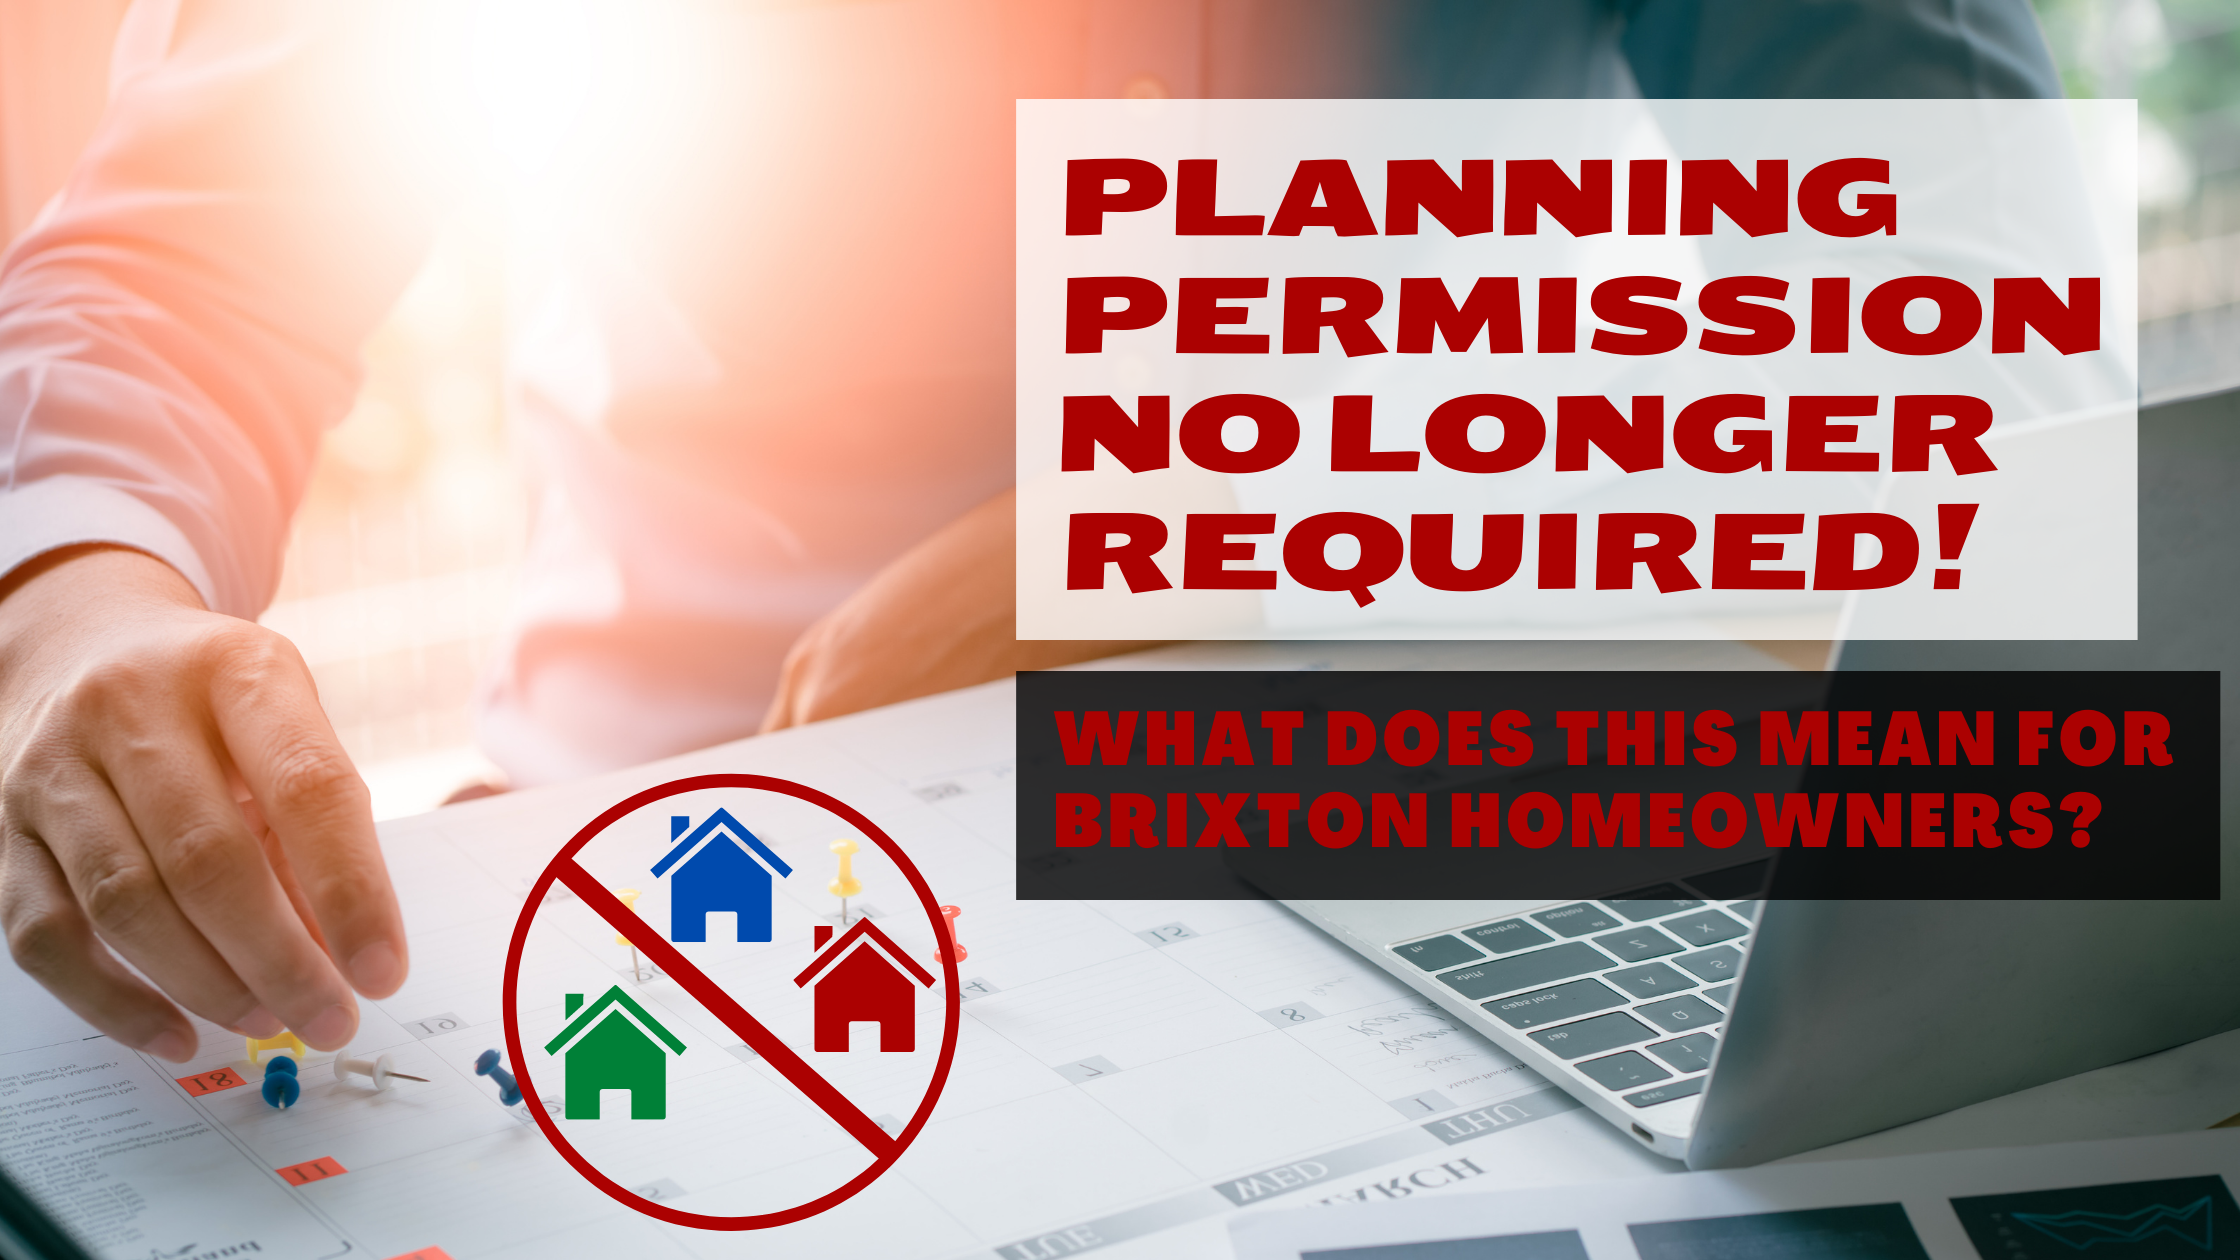 Nimbyism in Brixton is Dead – Long Live the Planning Permission Rule Changes: How will this affect the 28,147 Brixton Property Owners?